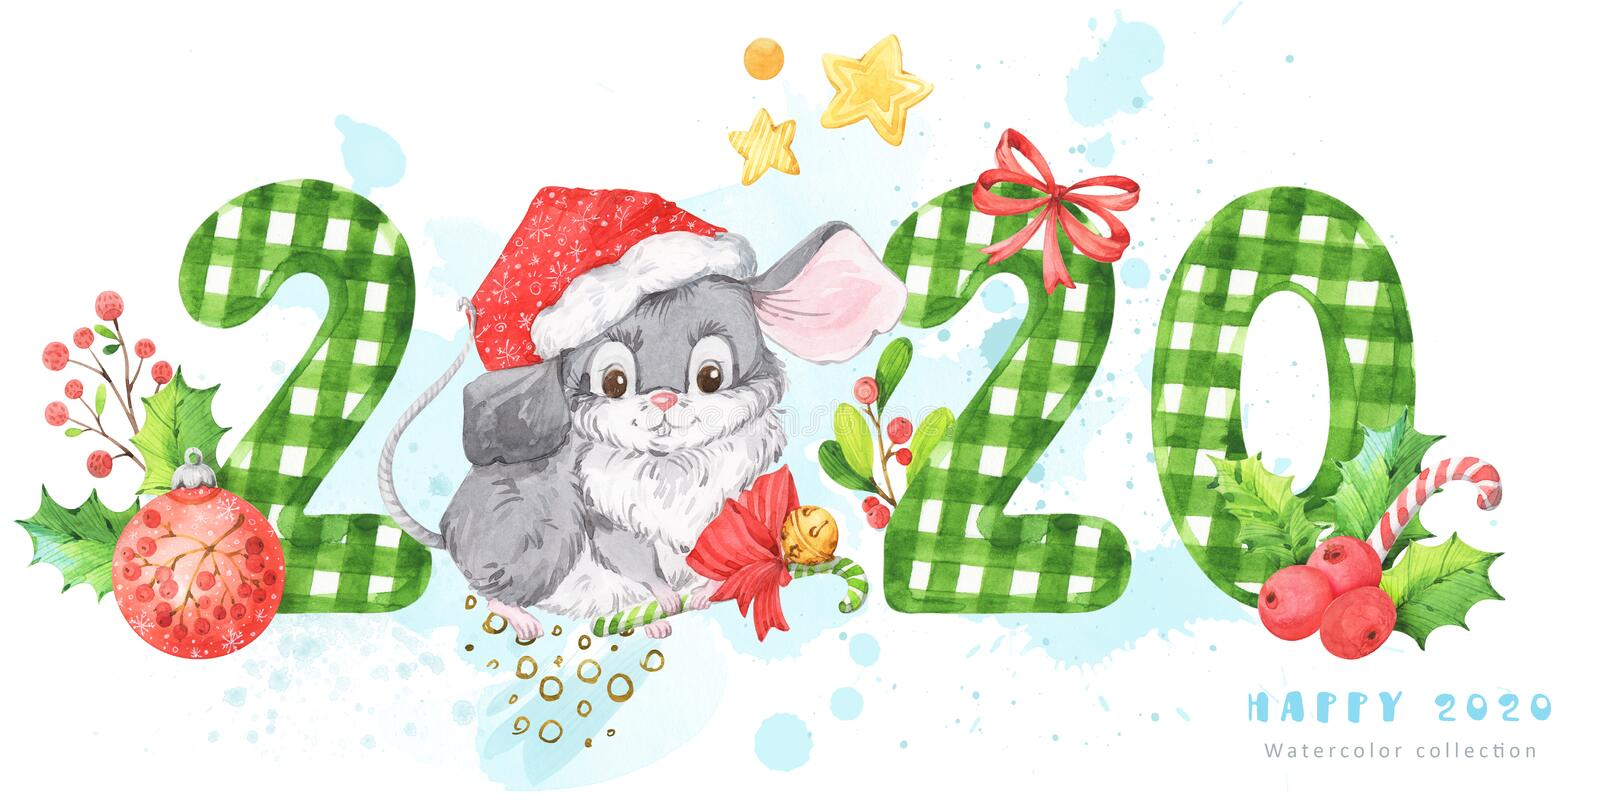 2020 New Year and Christmas banner with hand painted white and green patterned watercolor numbers and cute grey mouse, rat in a re royalty free illustration